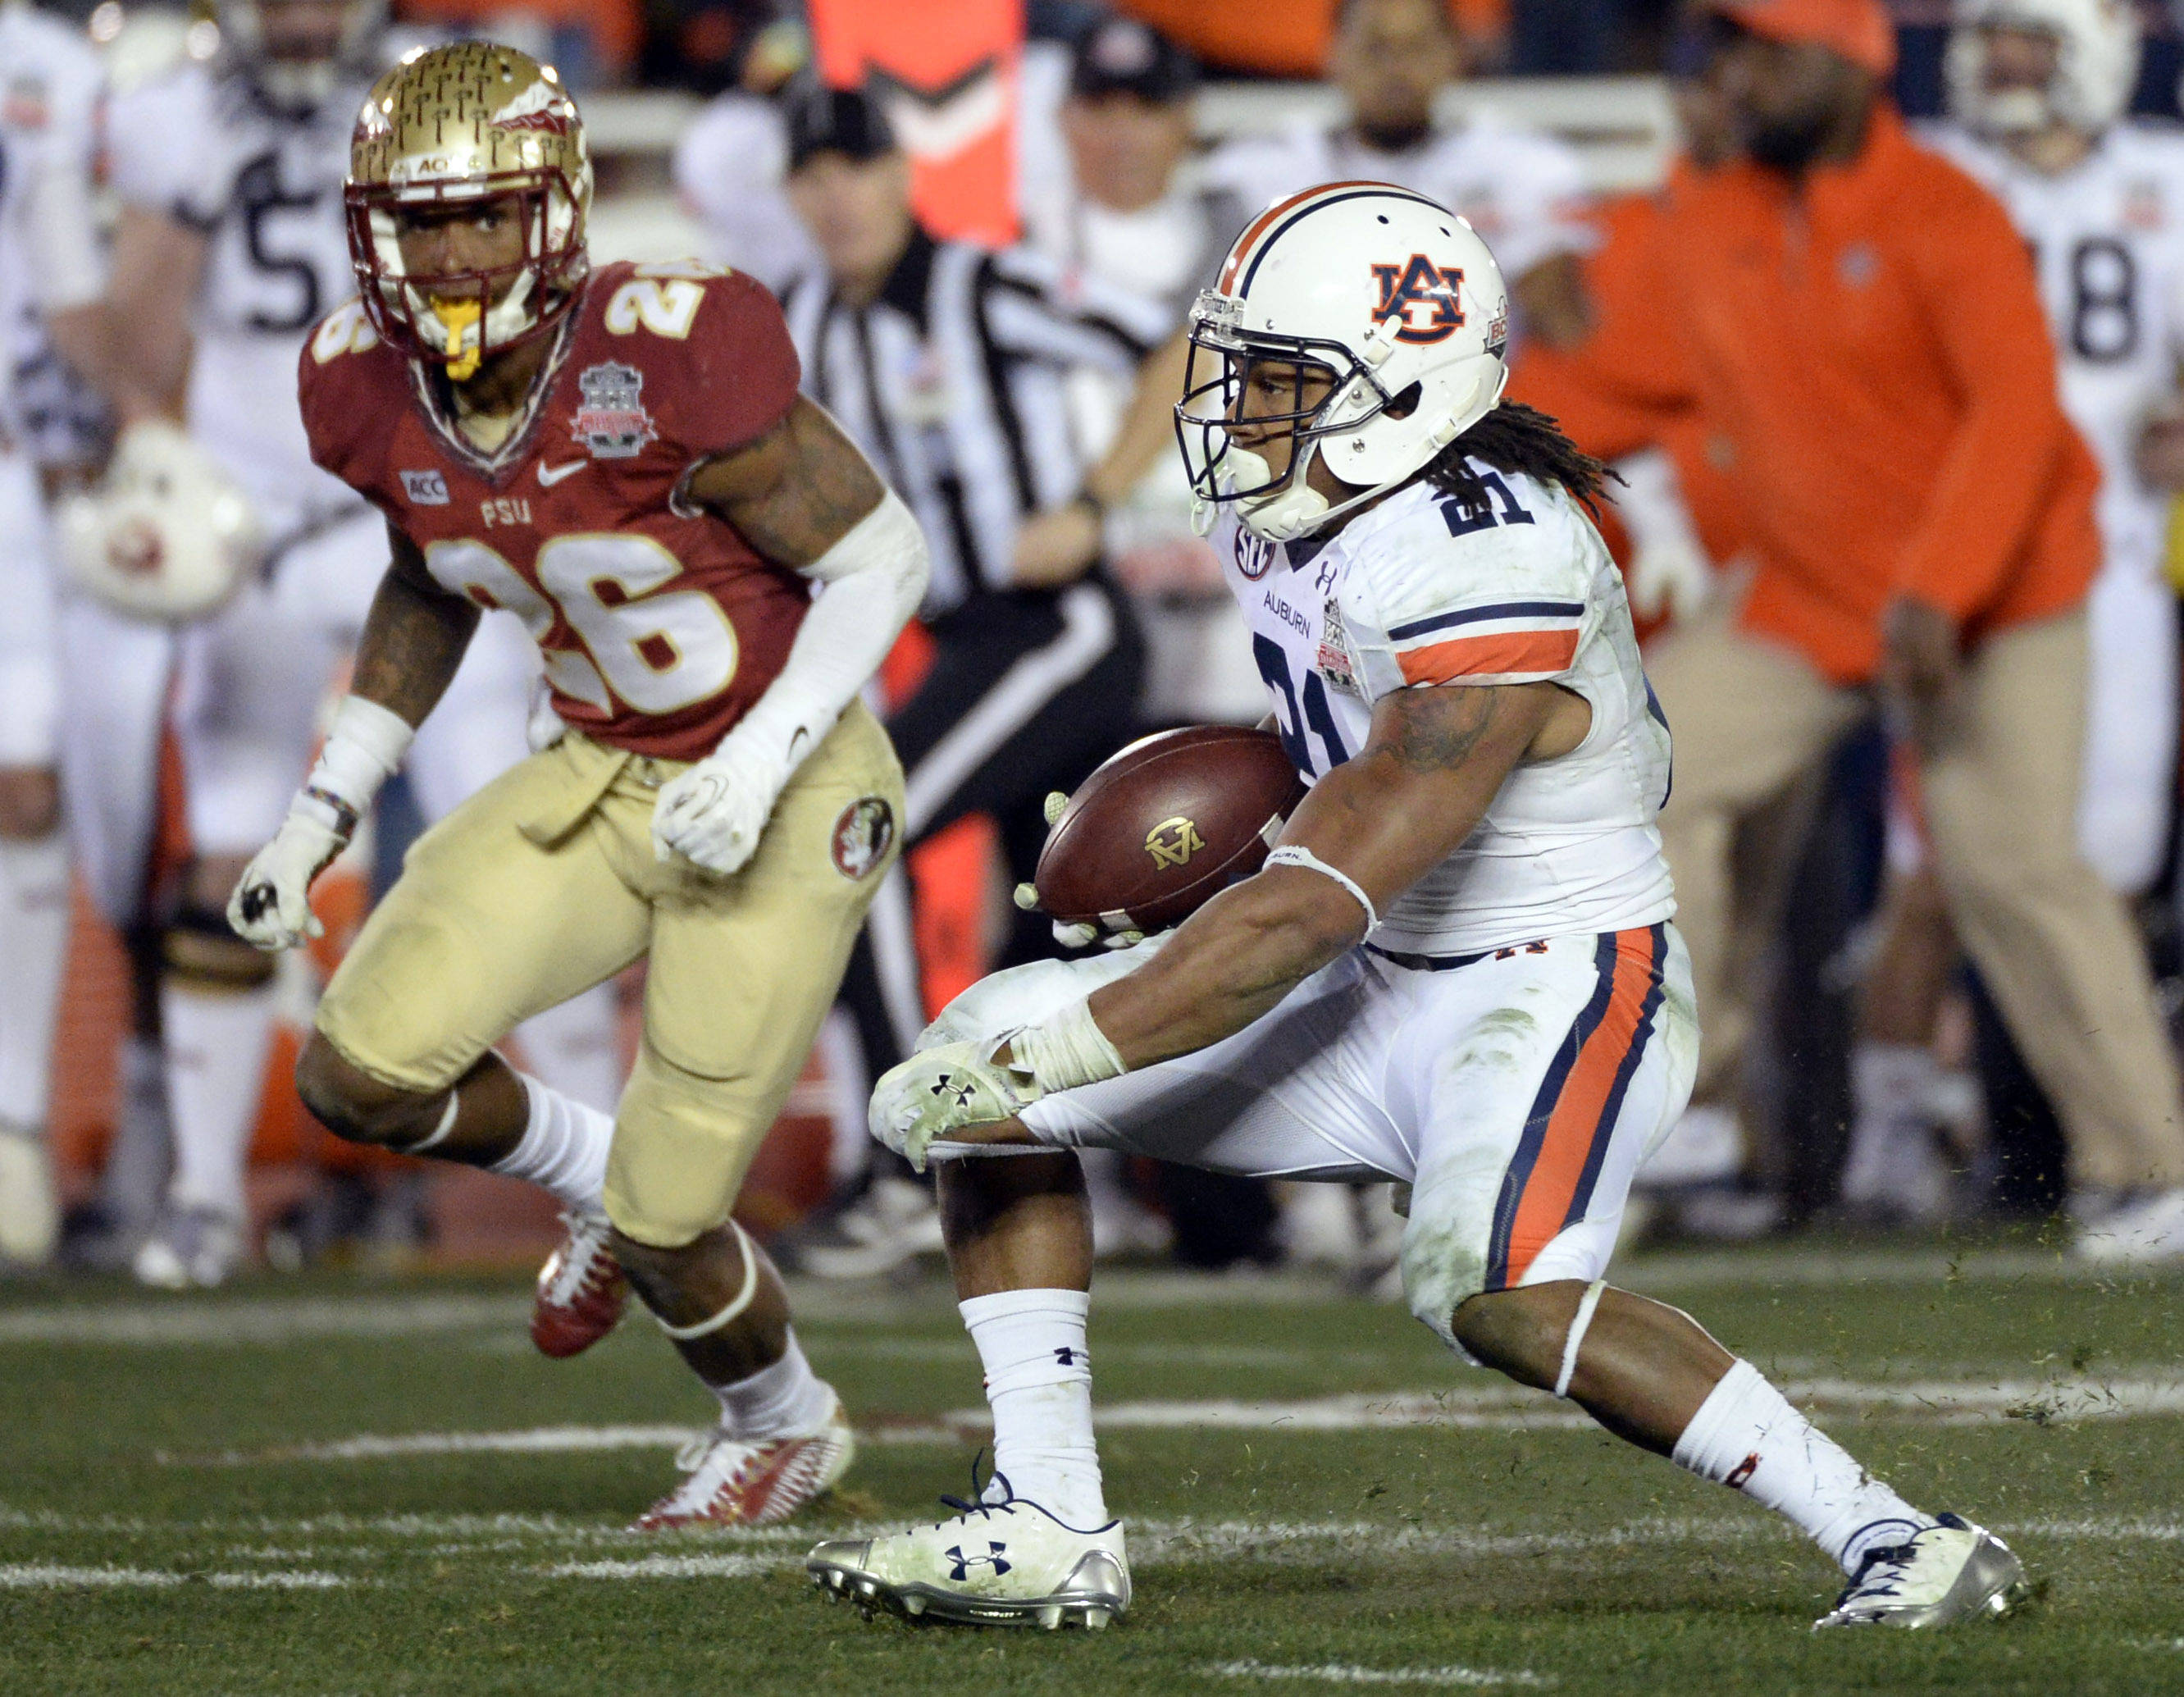 Jan 6, 2014; Pasadena, CA, USA; Auburn Tigers running back Tre Mason (21) on a touchdown run against the Florida State Seminoles during the second half of the 2014 BCS National Championship game at the Rose Bowl.  Mandatory Credit: Richard Mackson-USA TODAY Sports